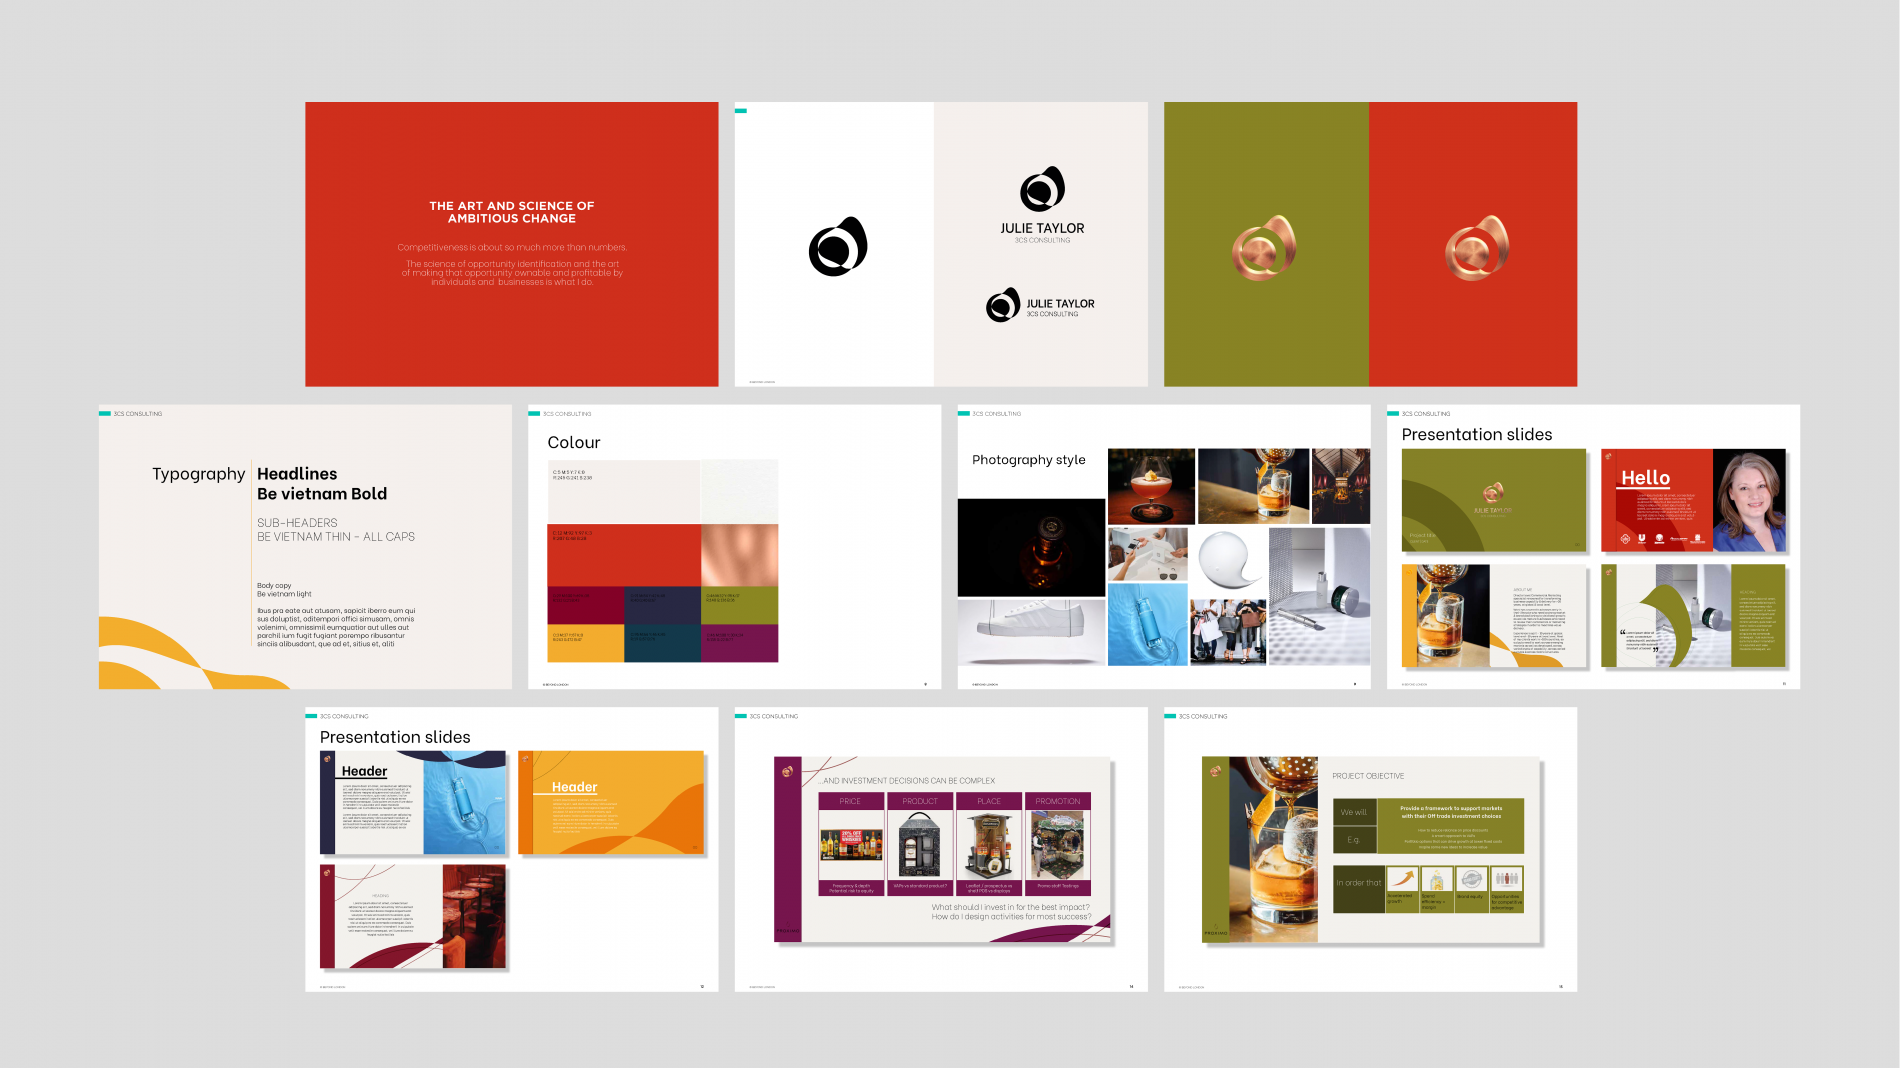 Julie Taylor 3CS consulting brand guideline pages